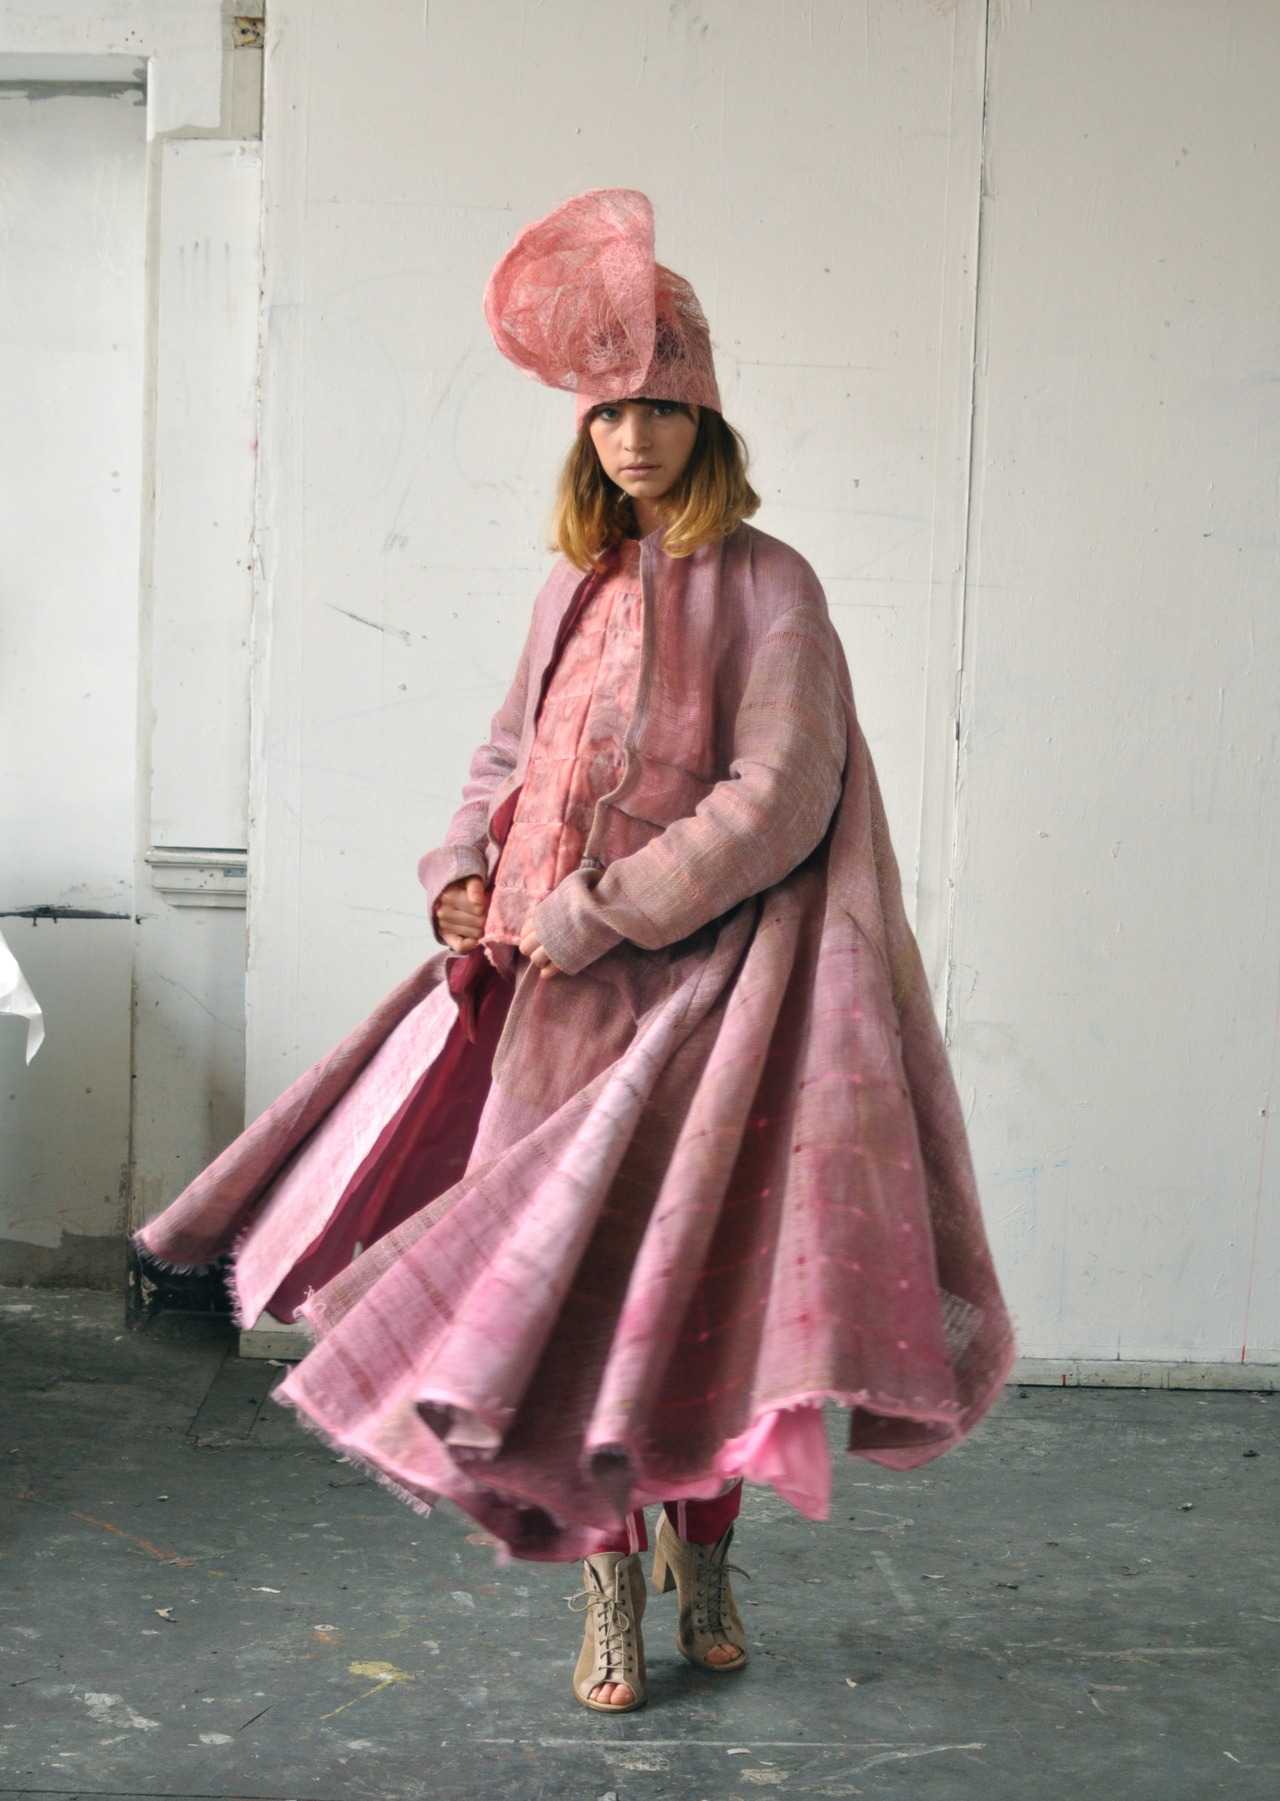 Photoshoot at ECA today. This one if from a graduate collection by Emma Hardstaff